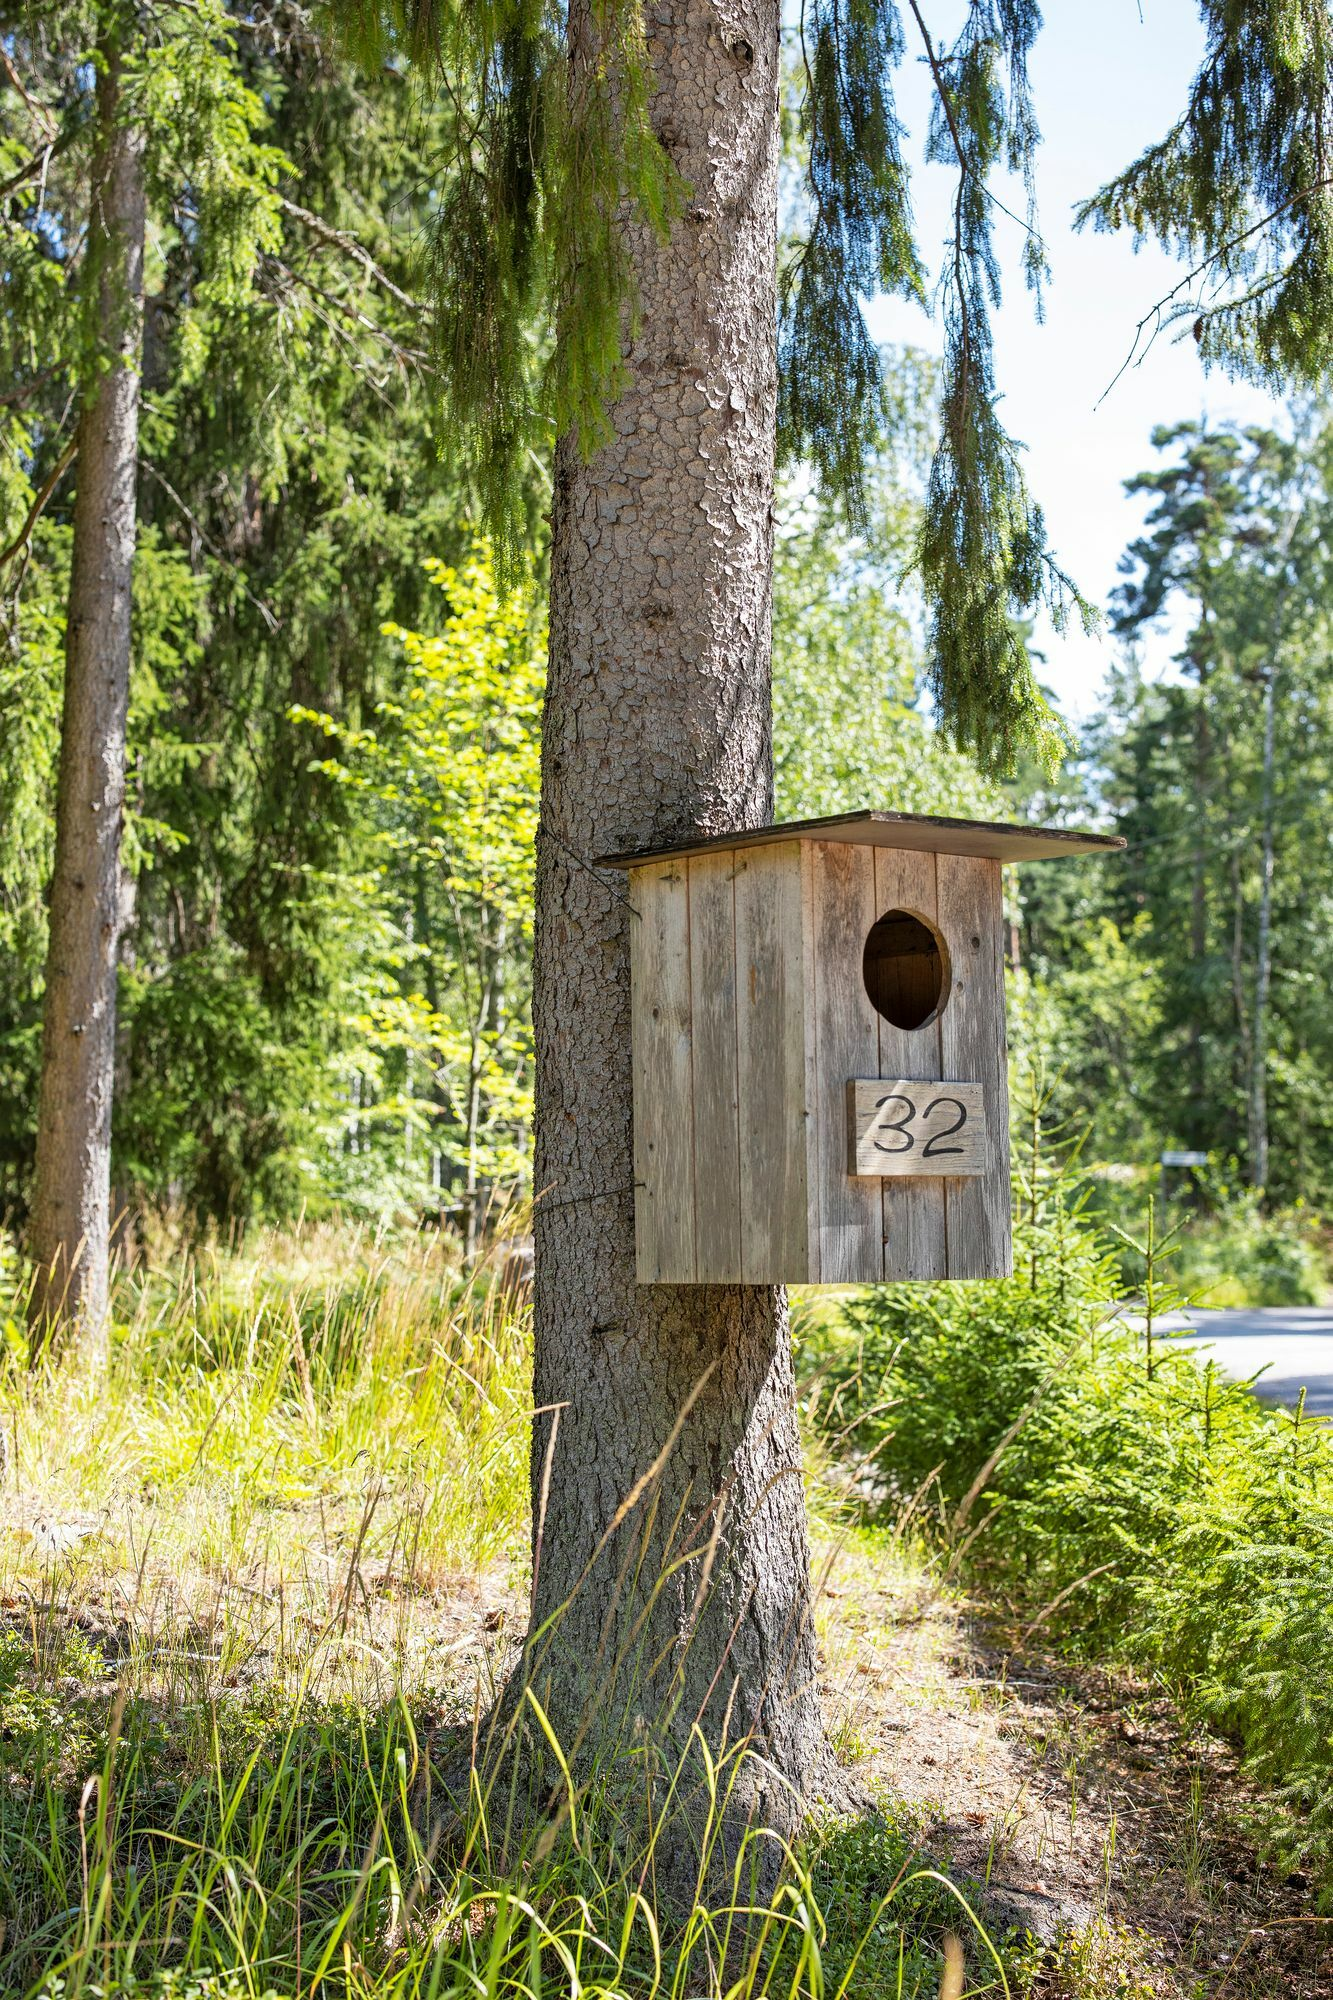 The roadside apron's owl bowl serves as a landmark so that customers picking up the bowls can turn to the workshop.